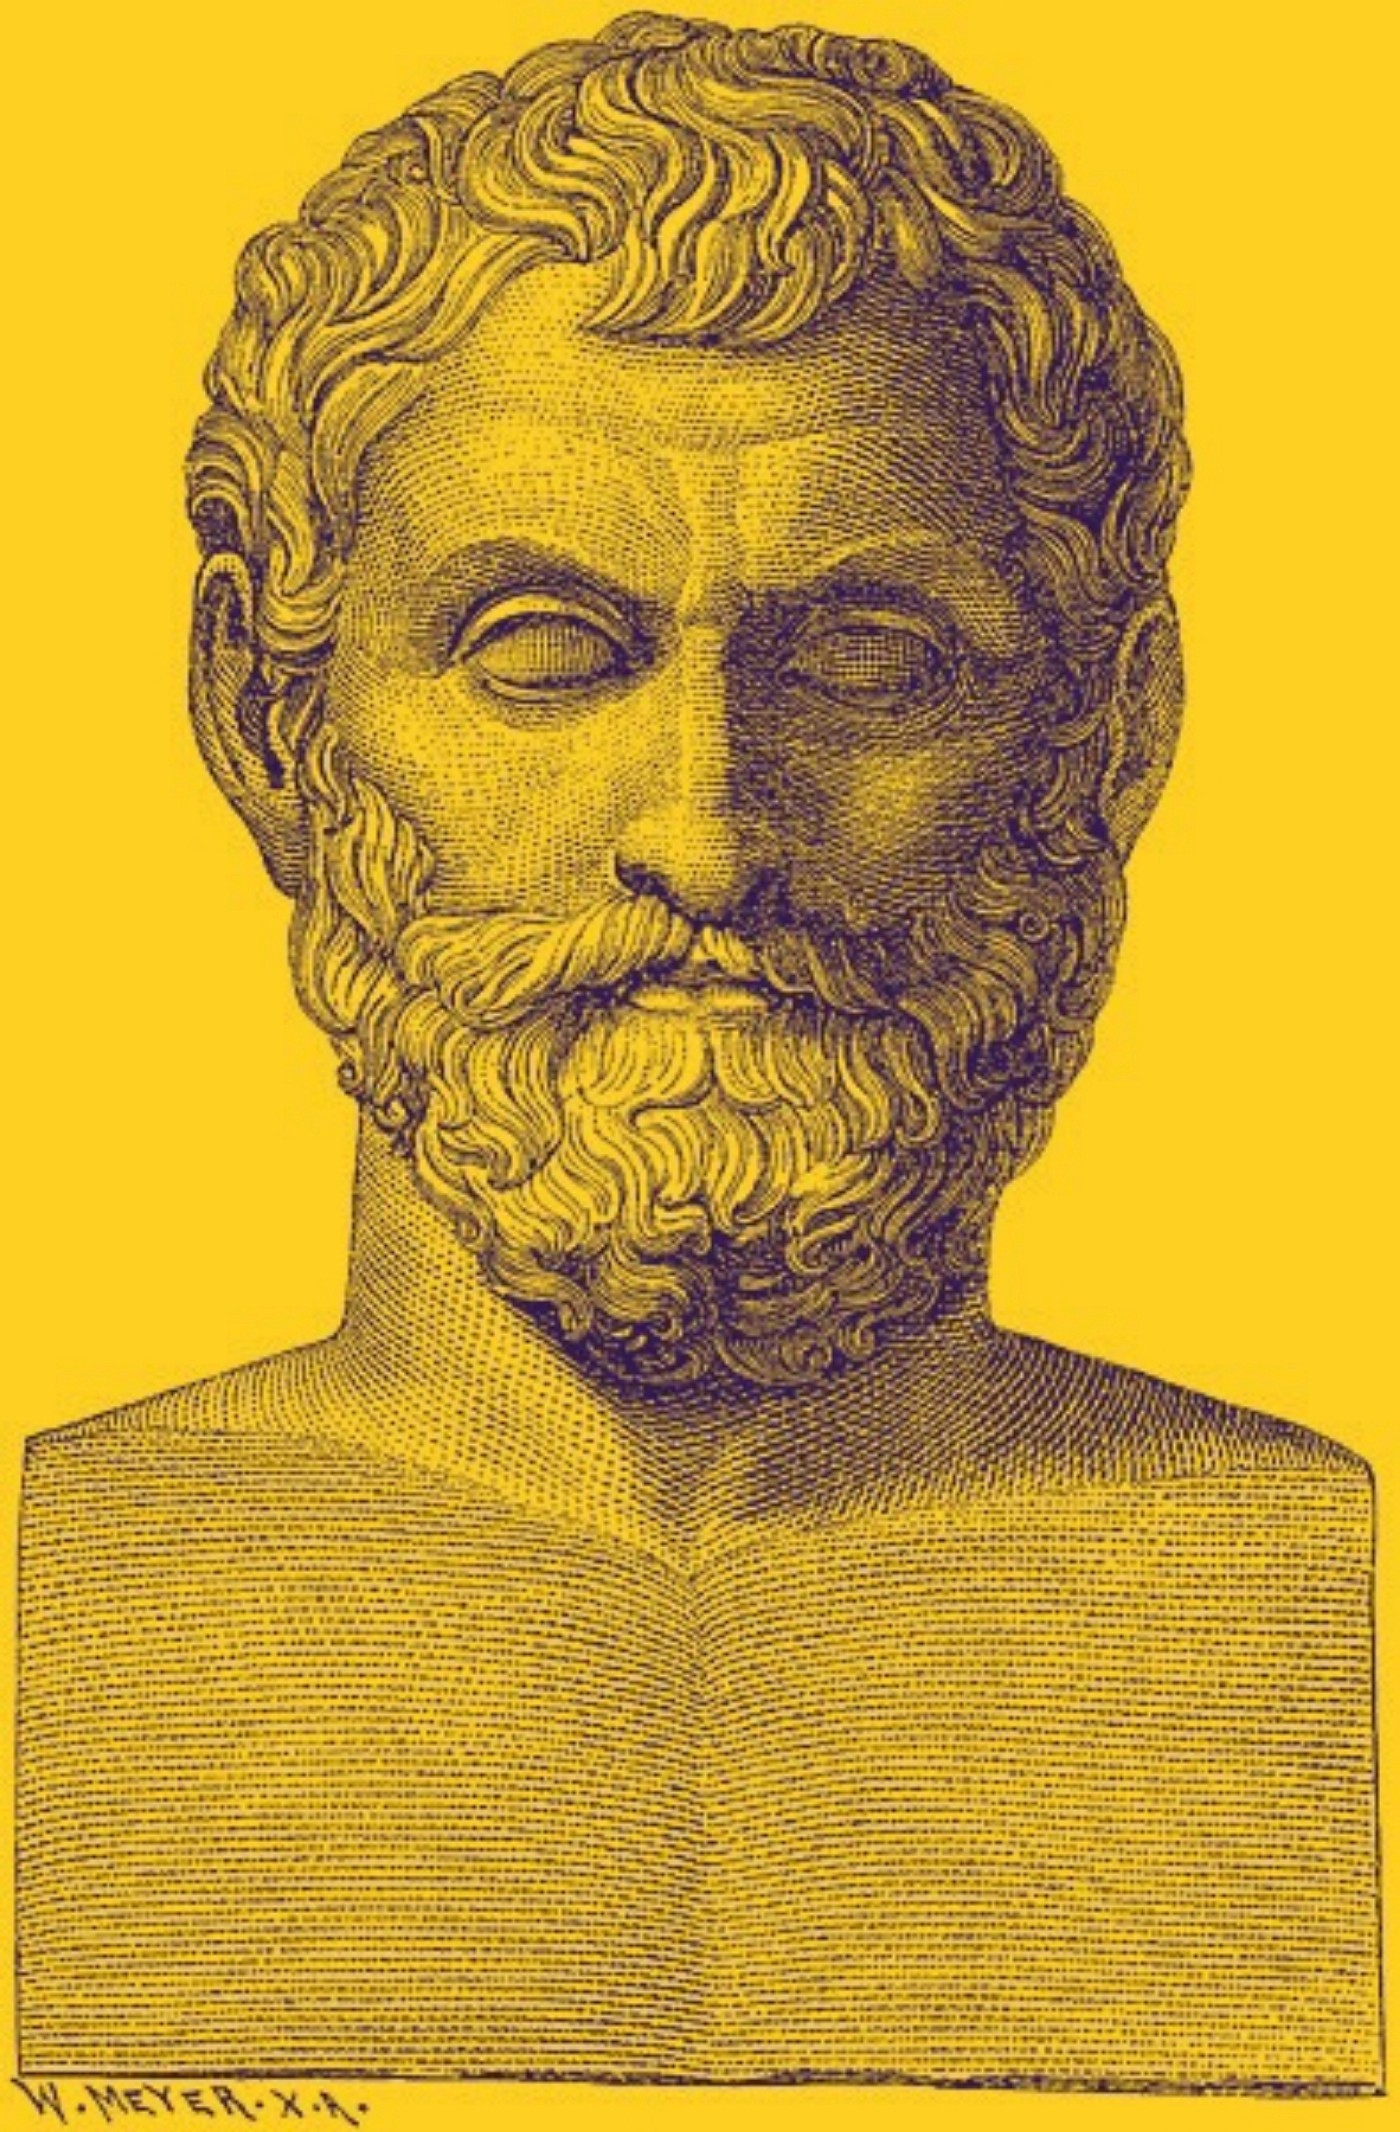 Thales of Miletus, one of the Western world's first panpsychists